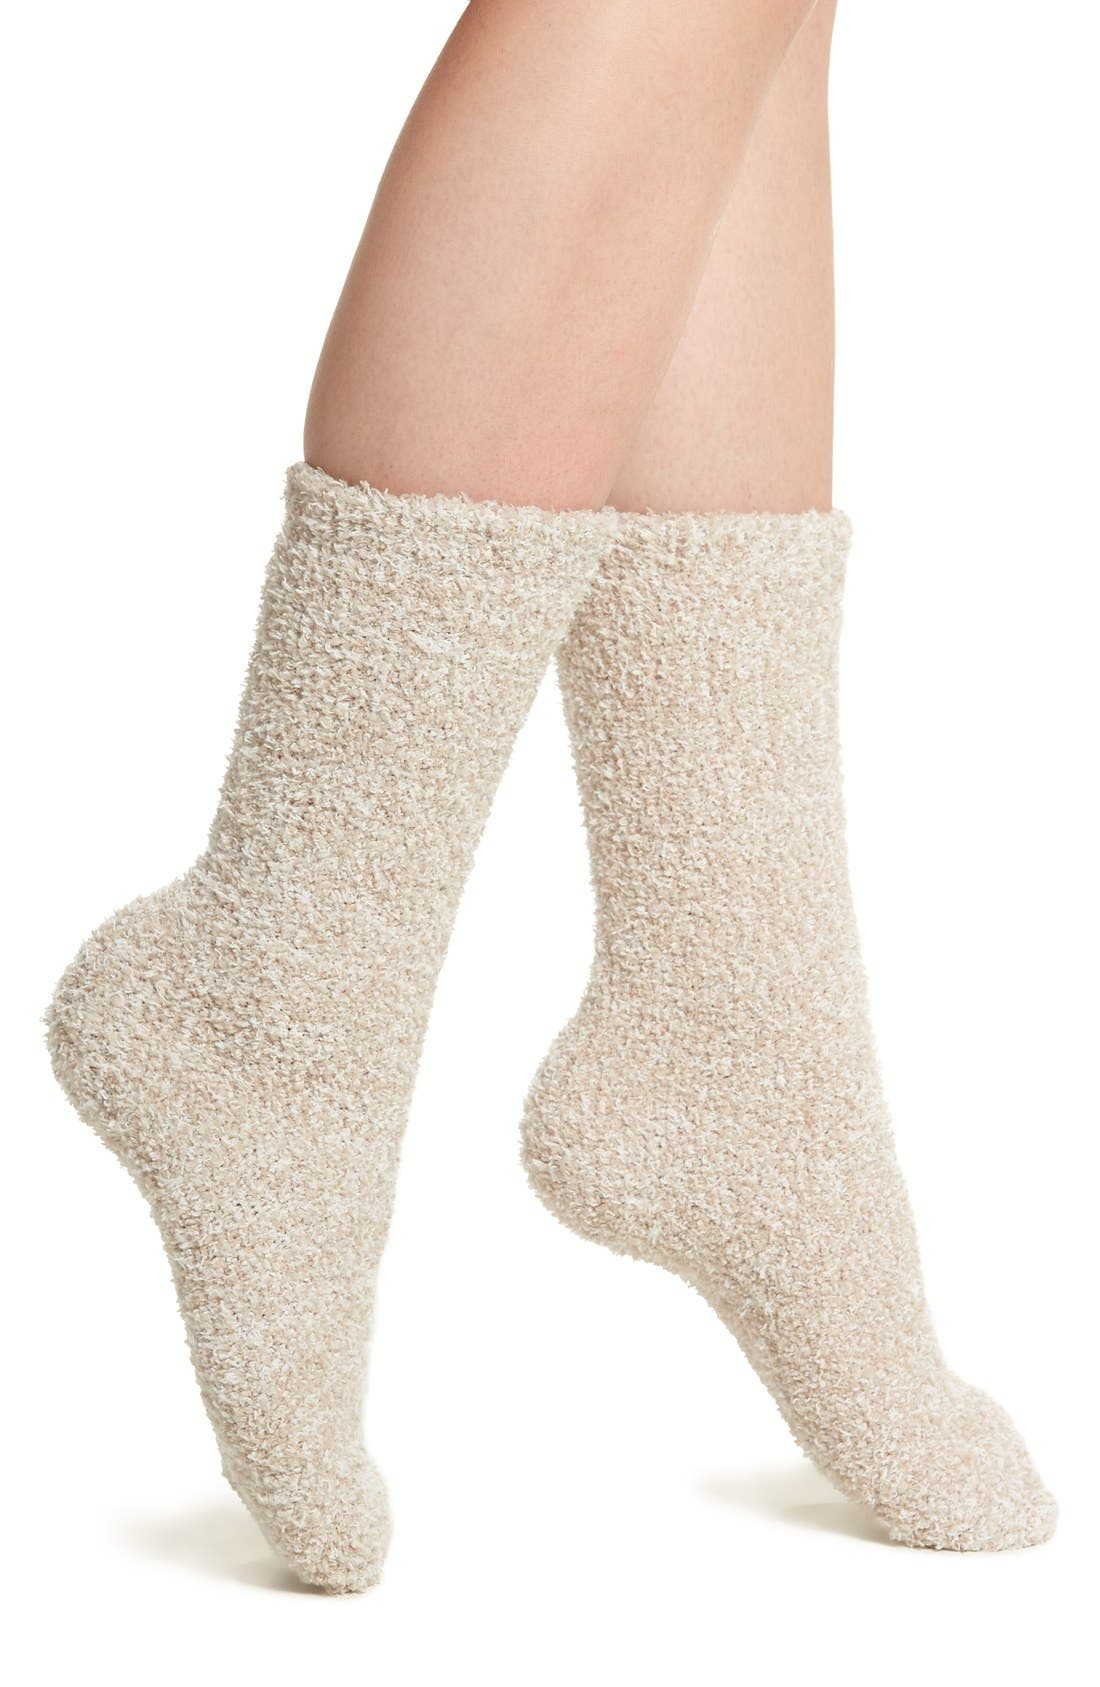 CozyChic<sup>®</sup> Socks,                         Main,                         color, Stone/ White